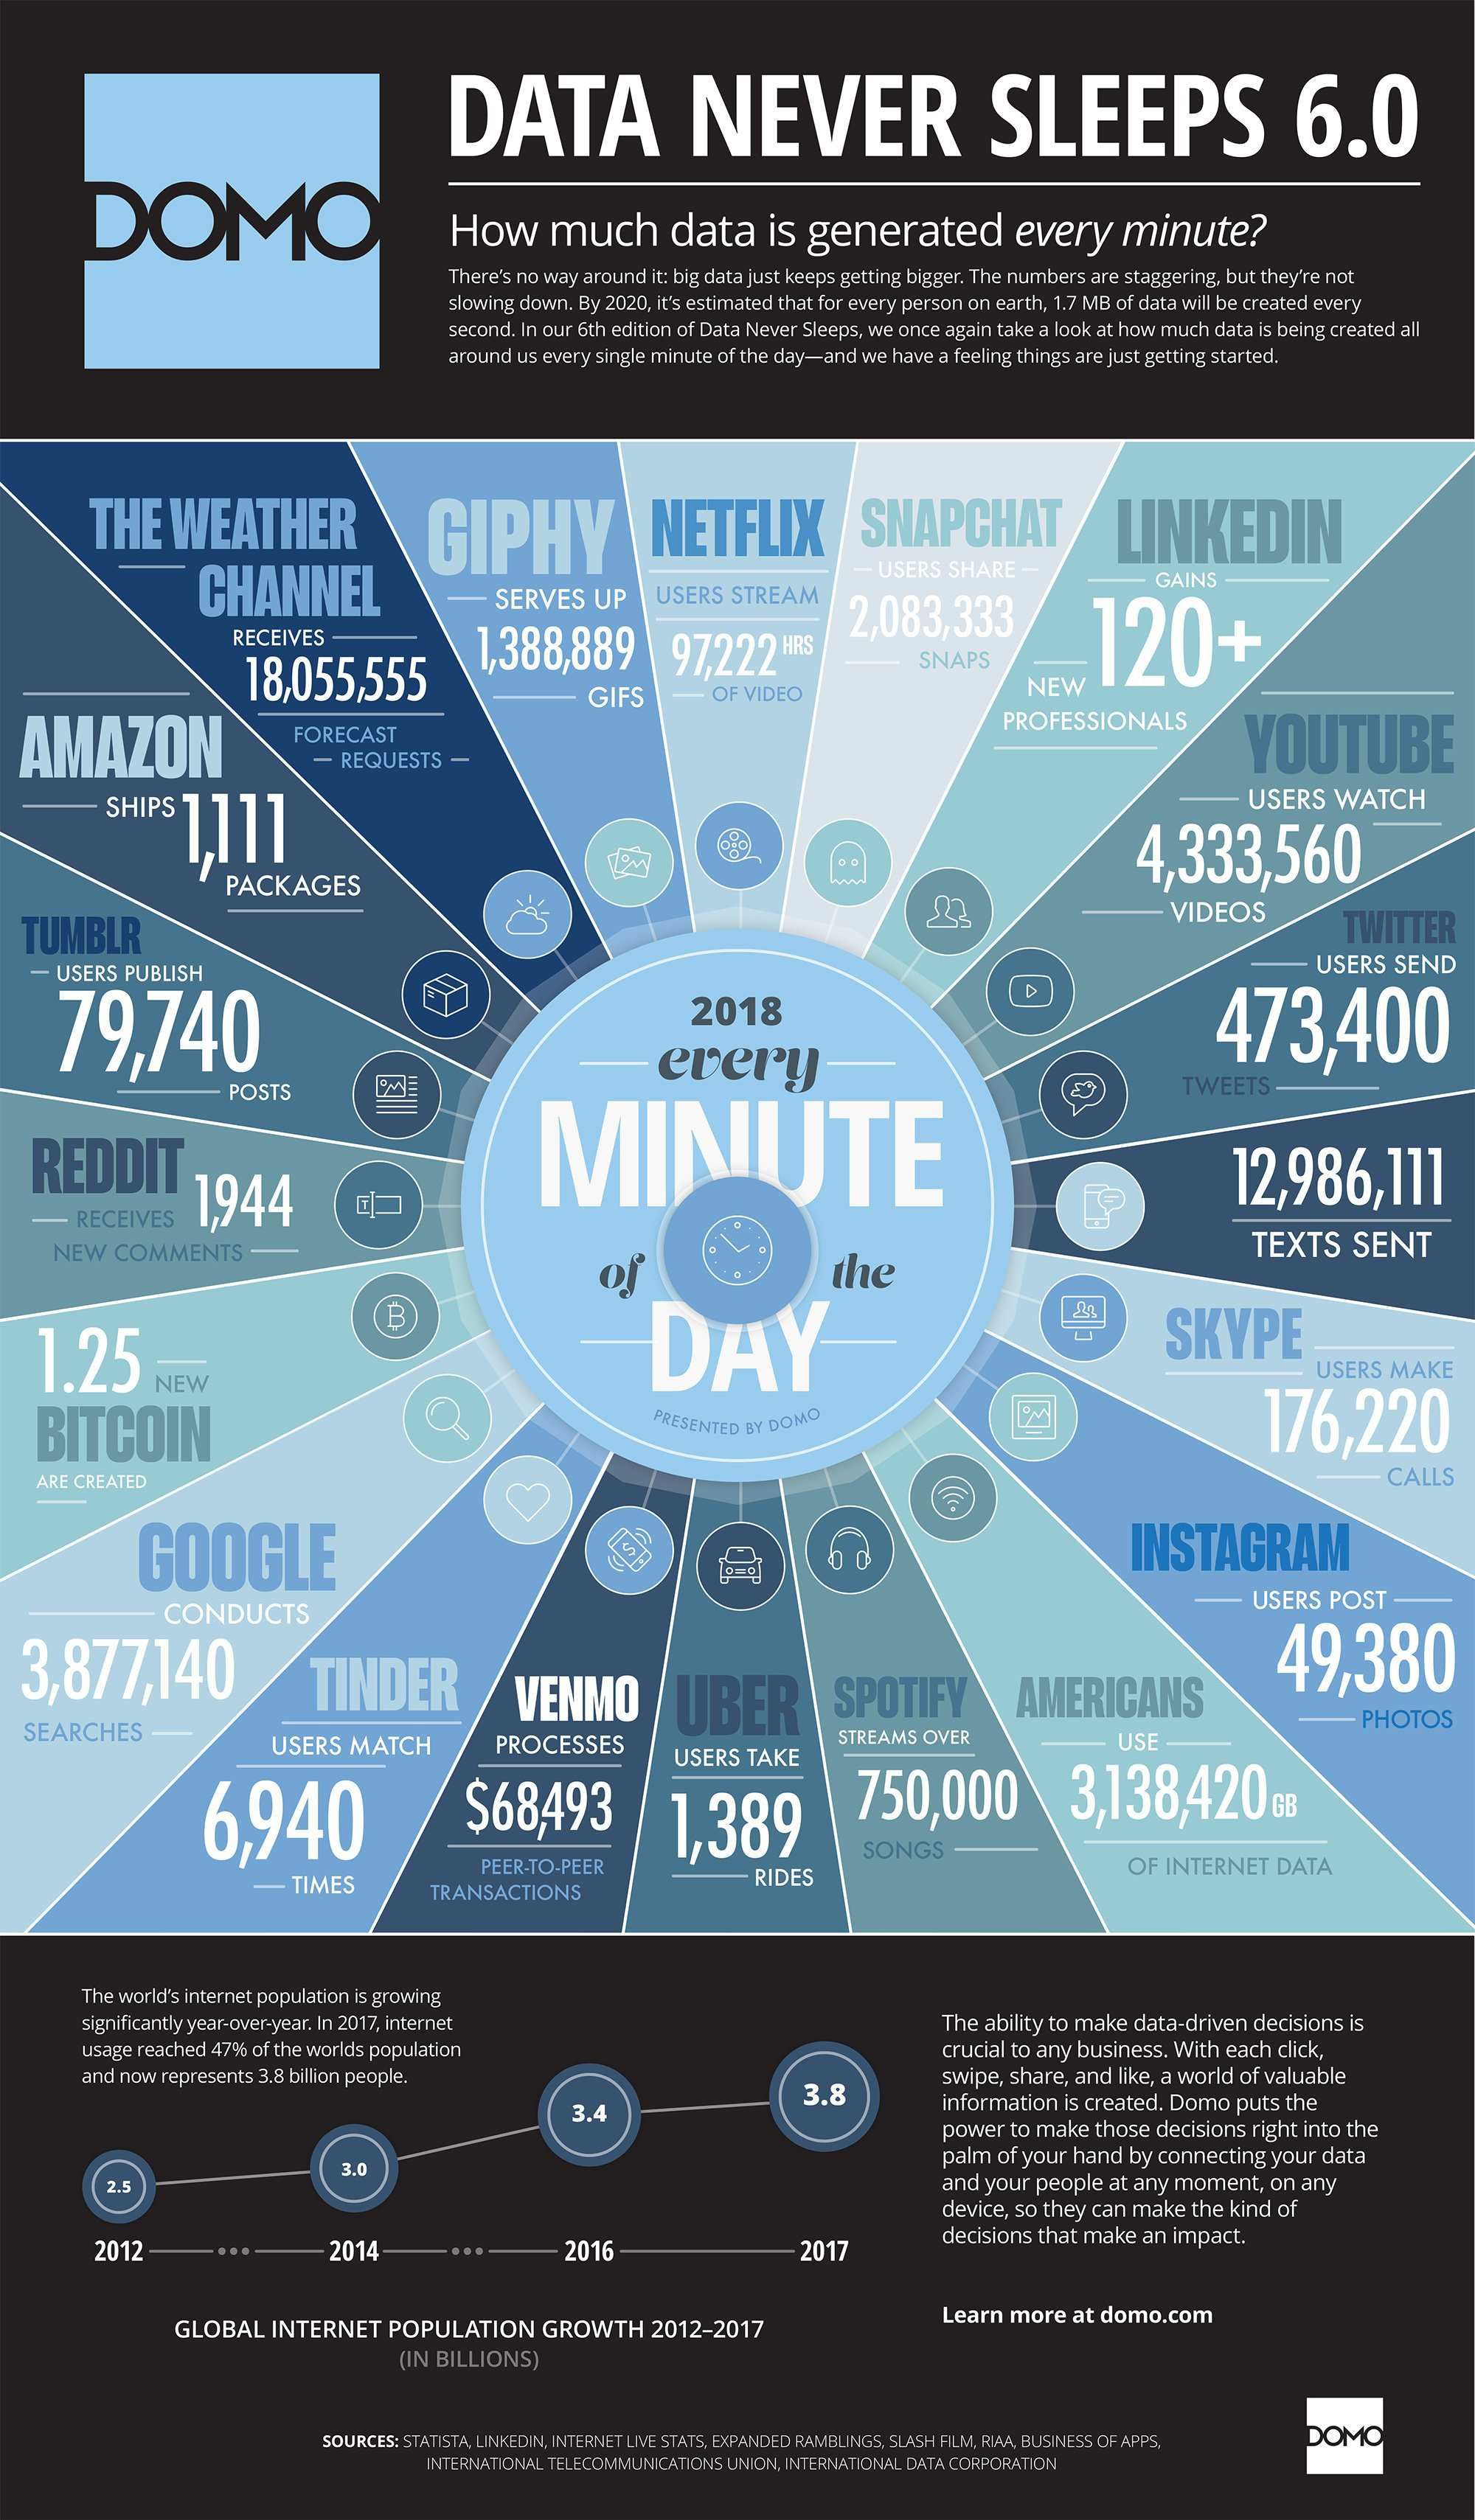 How Much Data Is Generated Every Minute In 2018